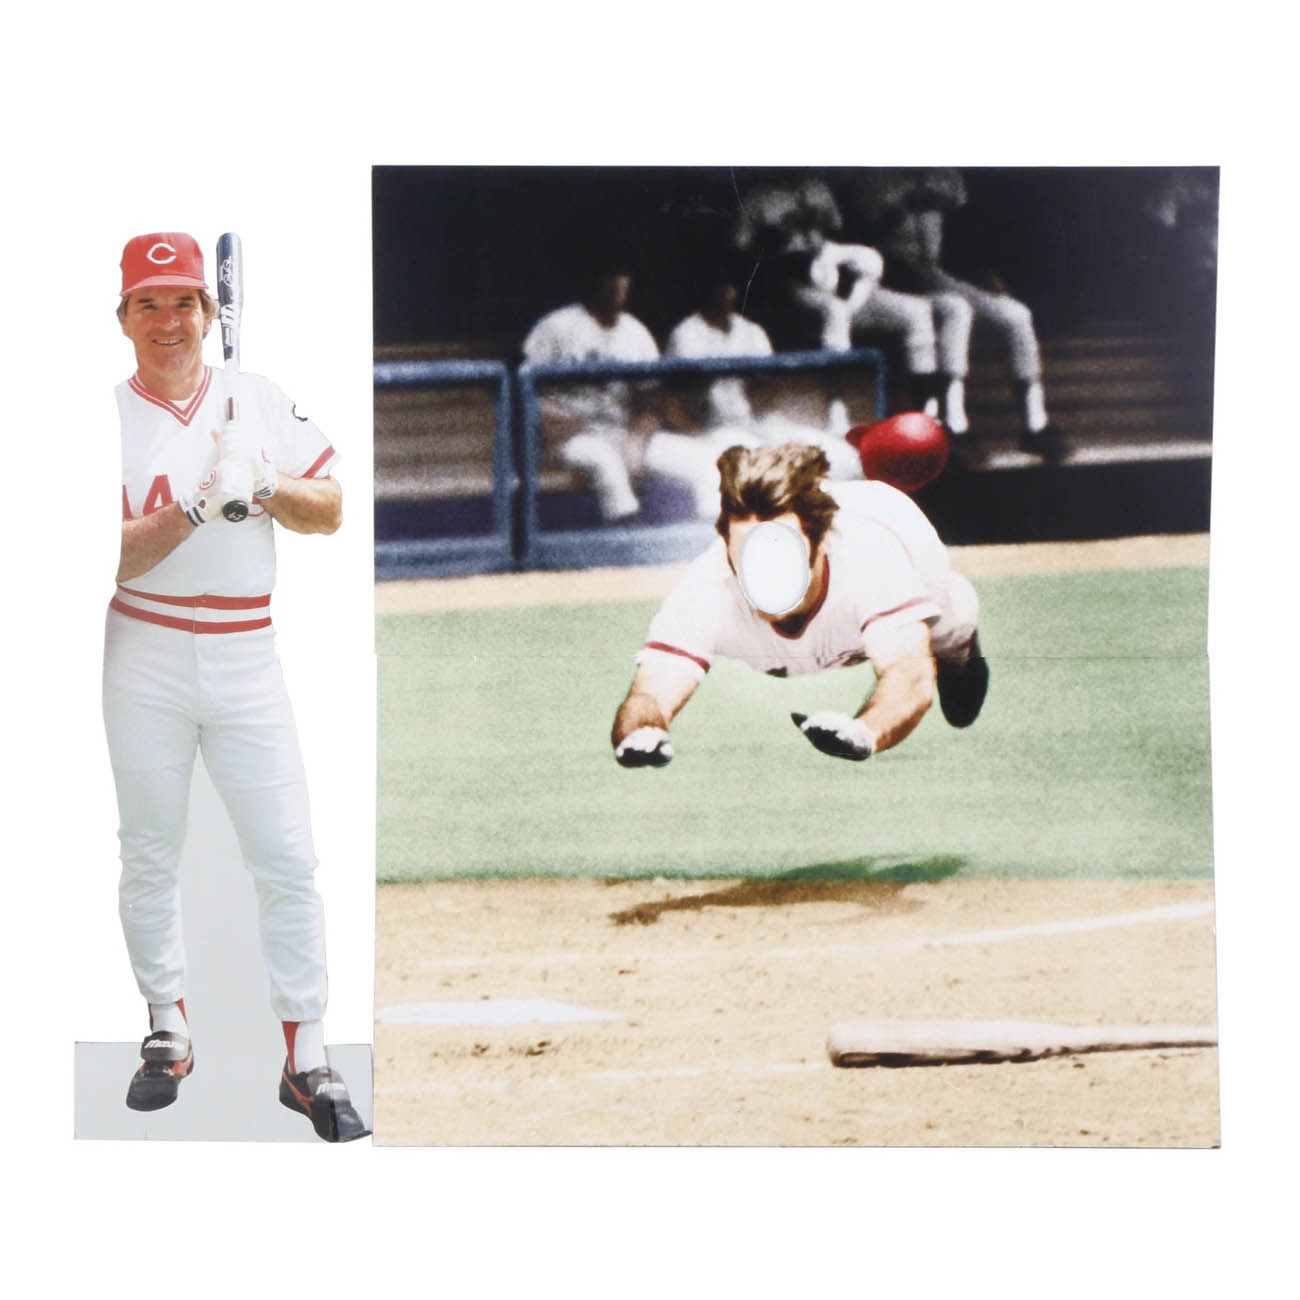 This two-piece photo-op display comes with a cut out of Pete Rose, as well as a display showing a head-first slide from Pete with his face cut out. This allows people to stand behind it with their face in the cut-out to look like they're sliding into home, too. / Image courtesy of Everything But The House (EBTH) // Published: 12.6.18